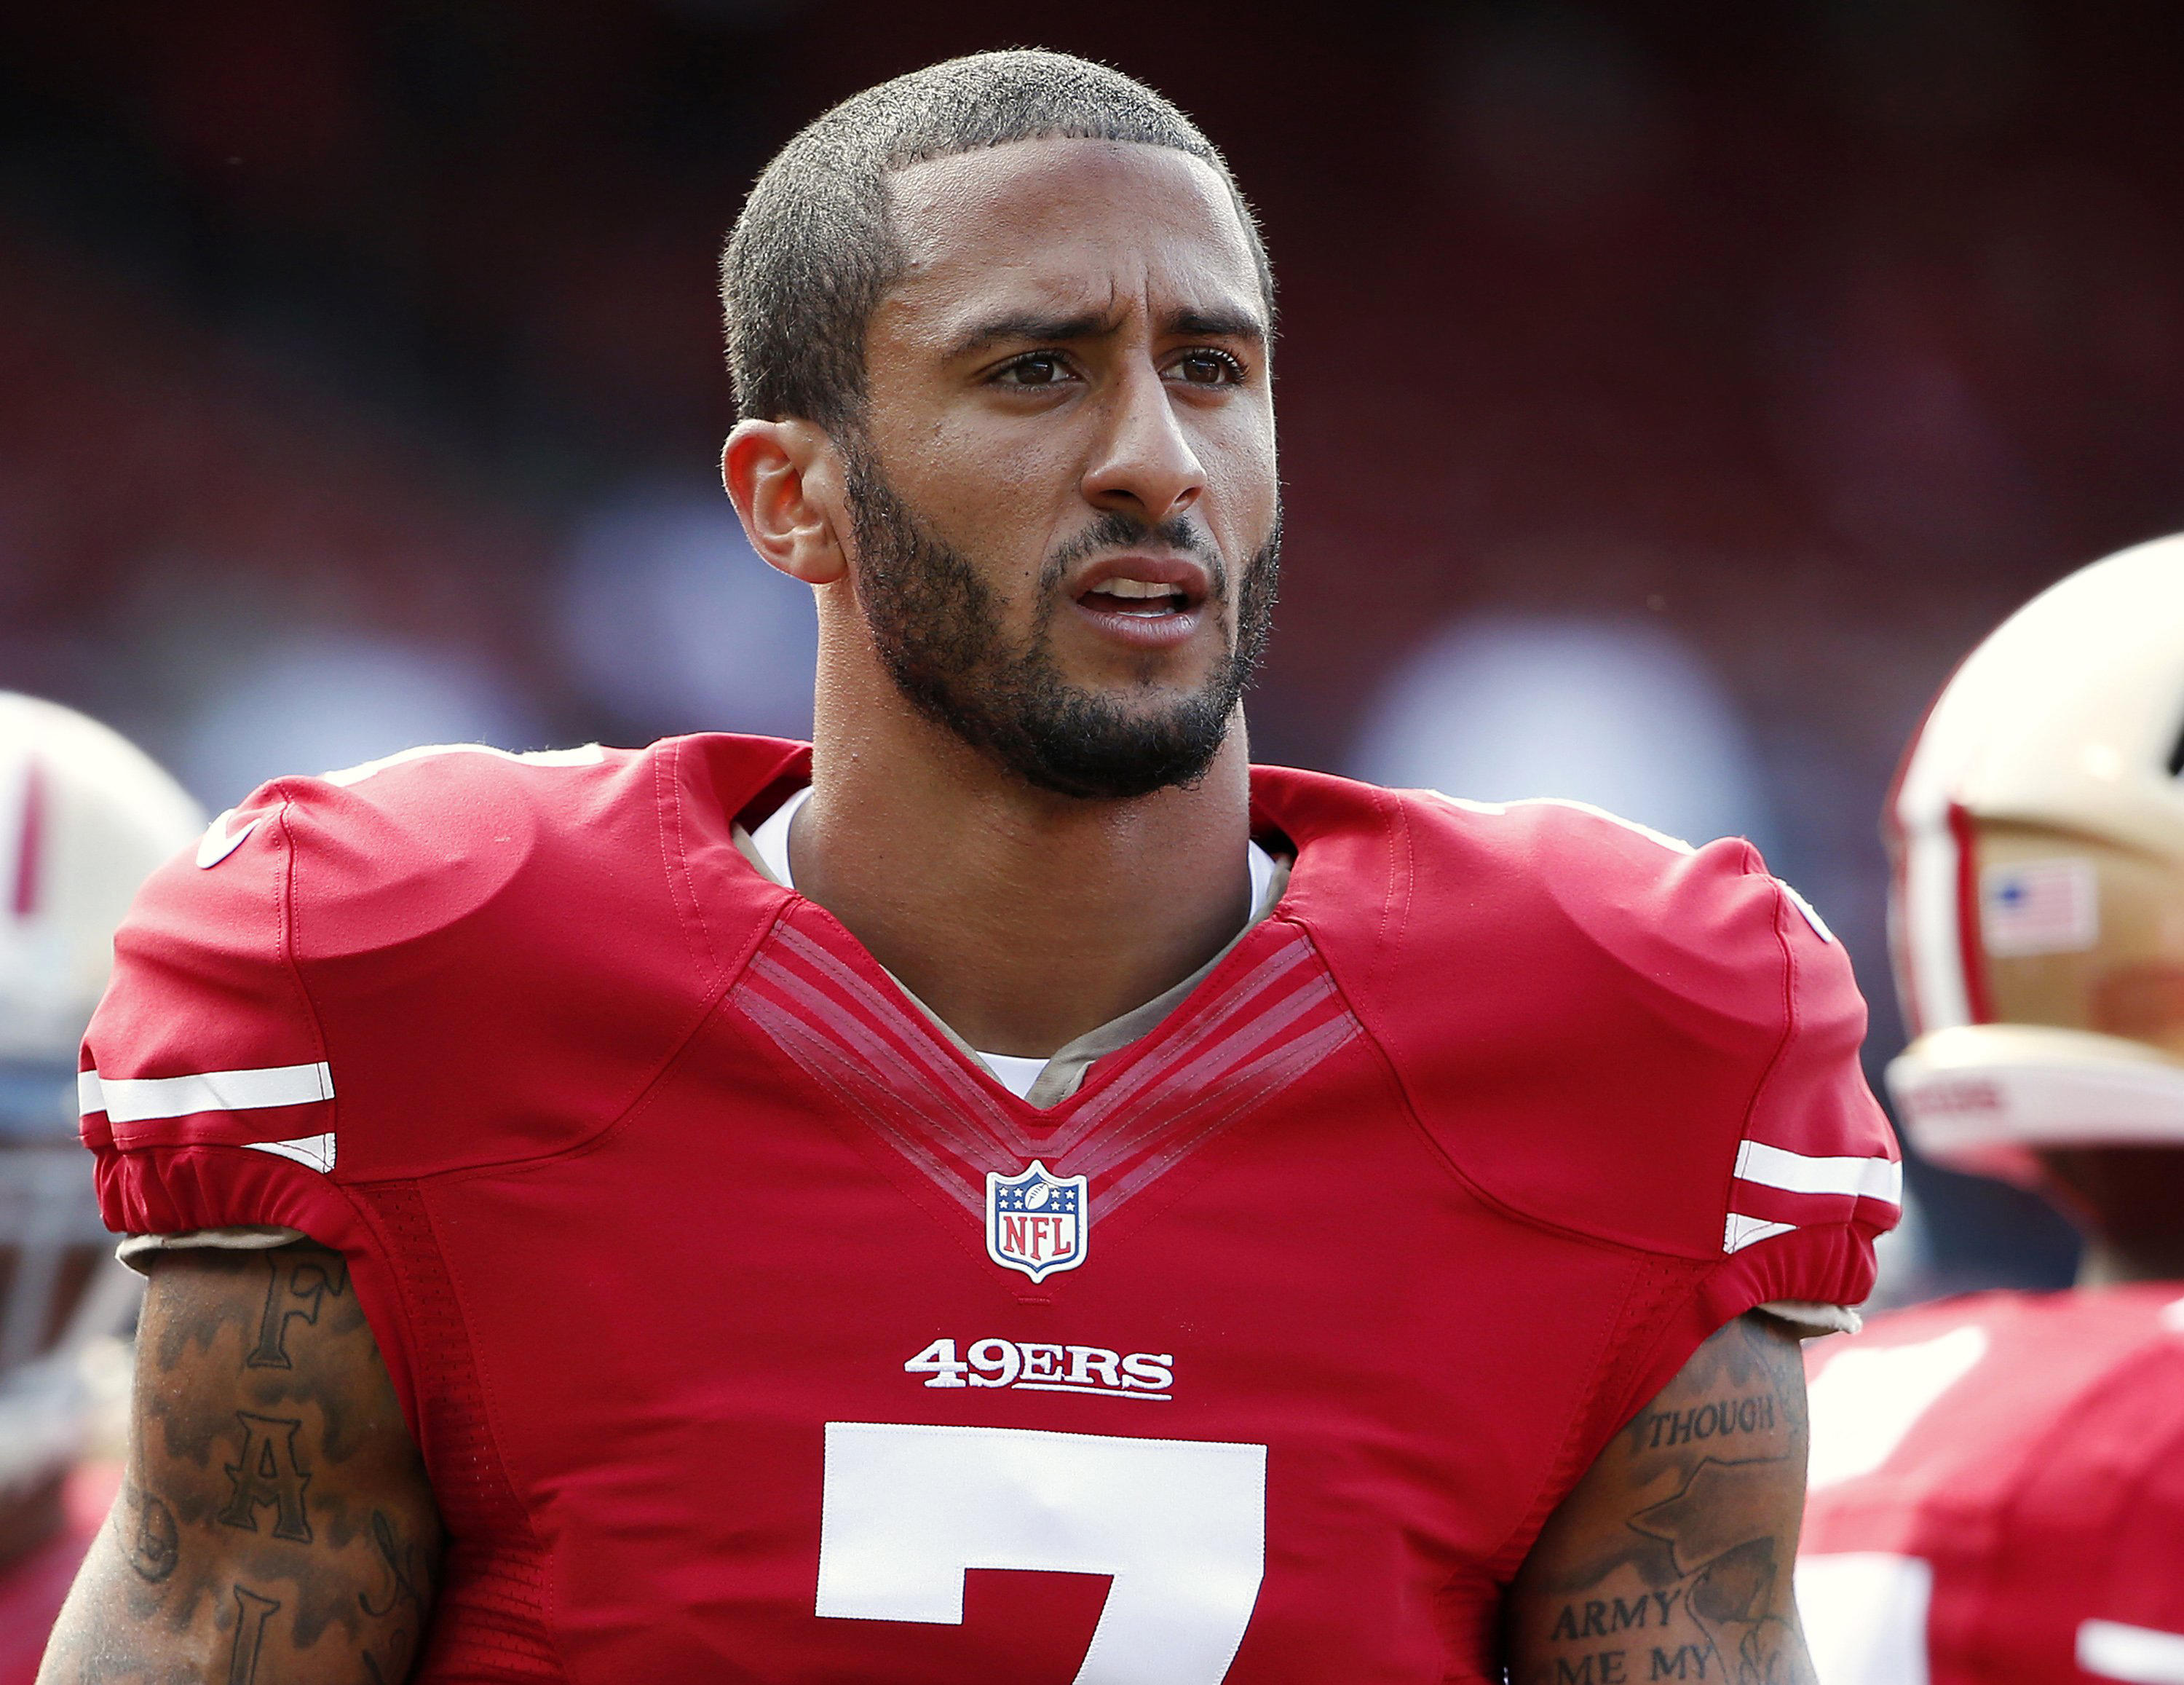 adc748484 San Francisco 49ers  Colin Kaepernick refuses to stand for national anthem